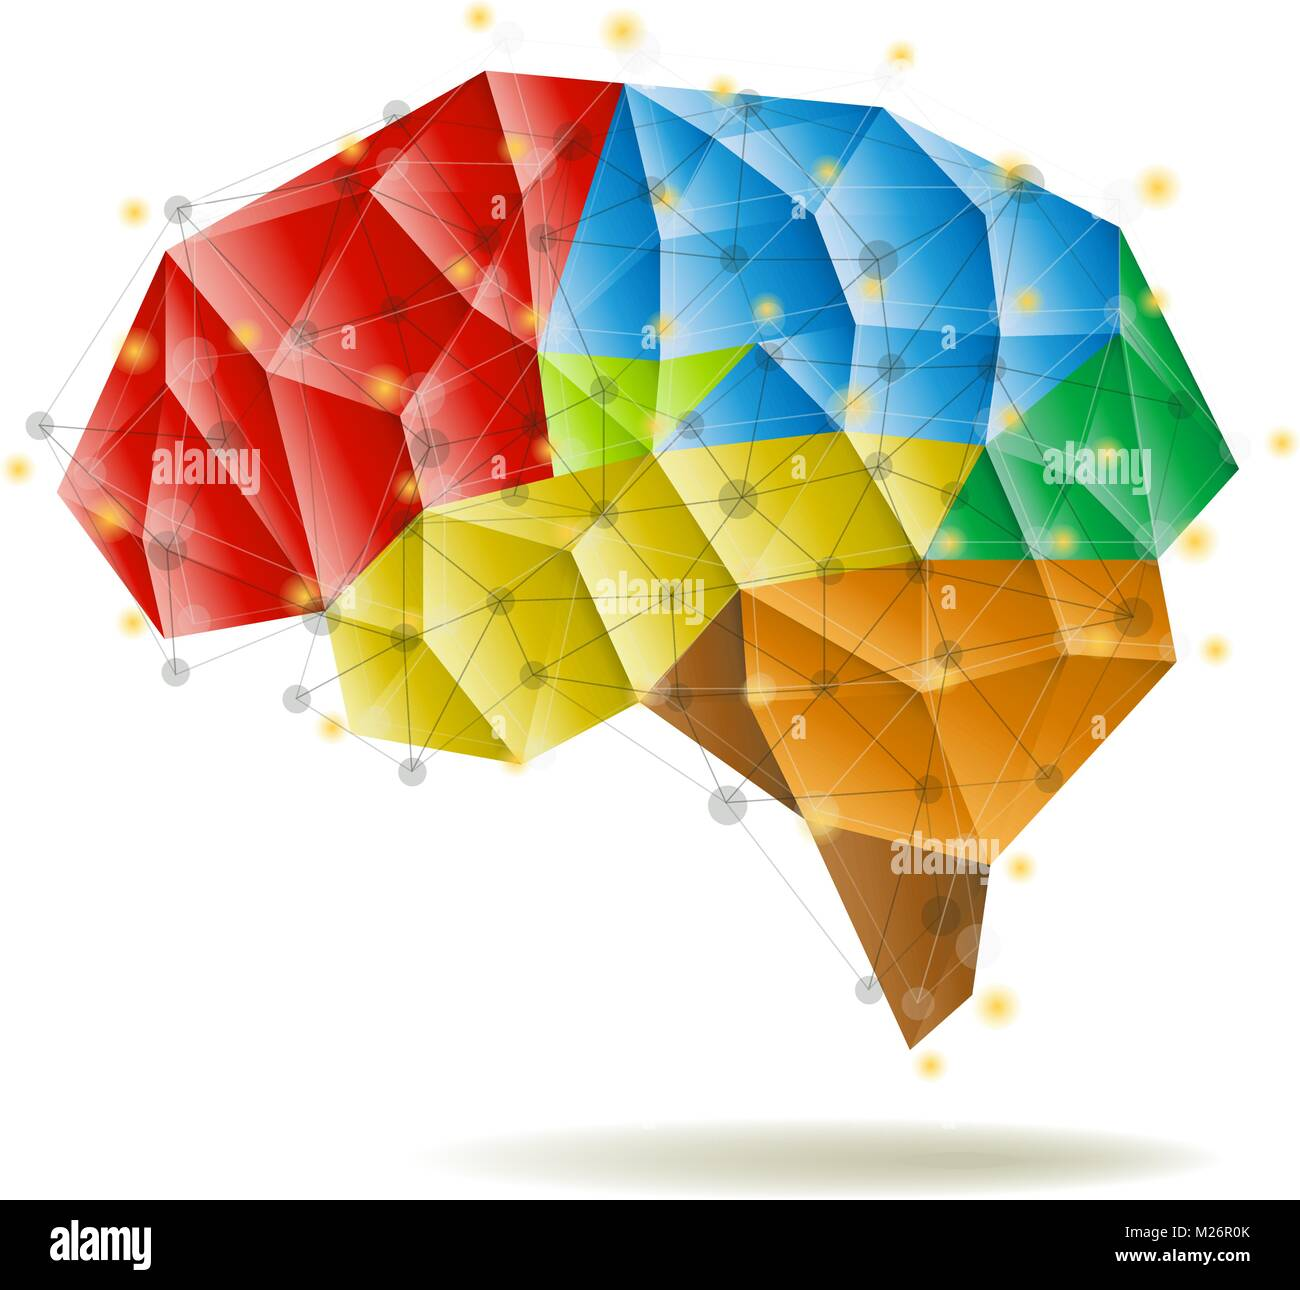 Human Brain Anatomy Structure Vector Illustration